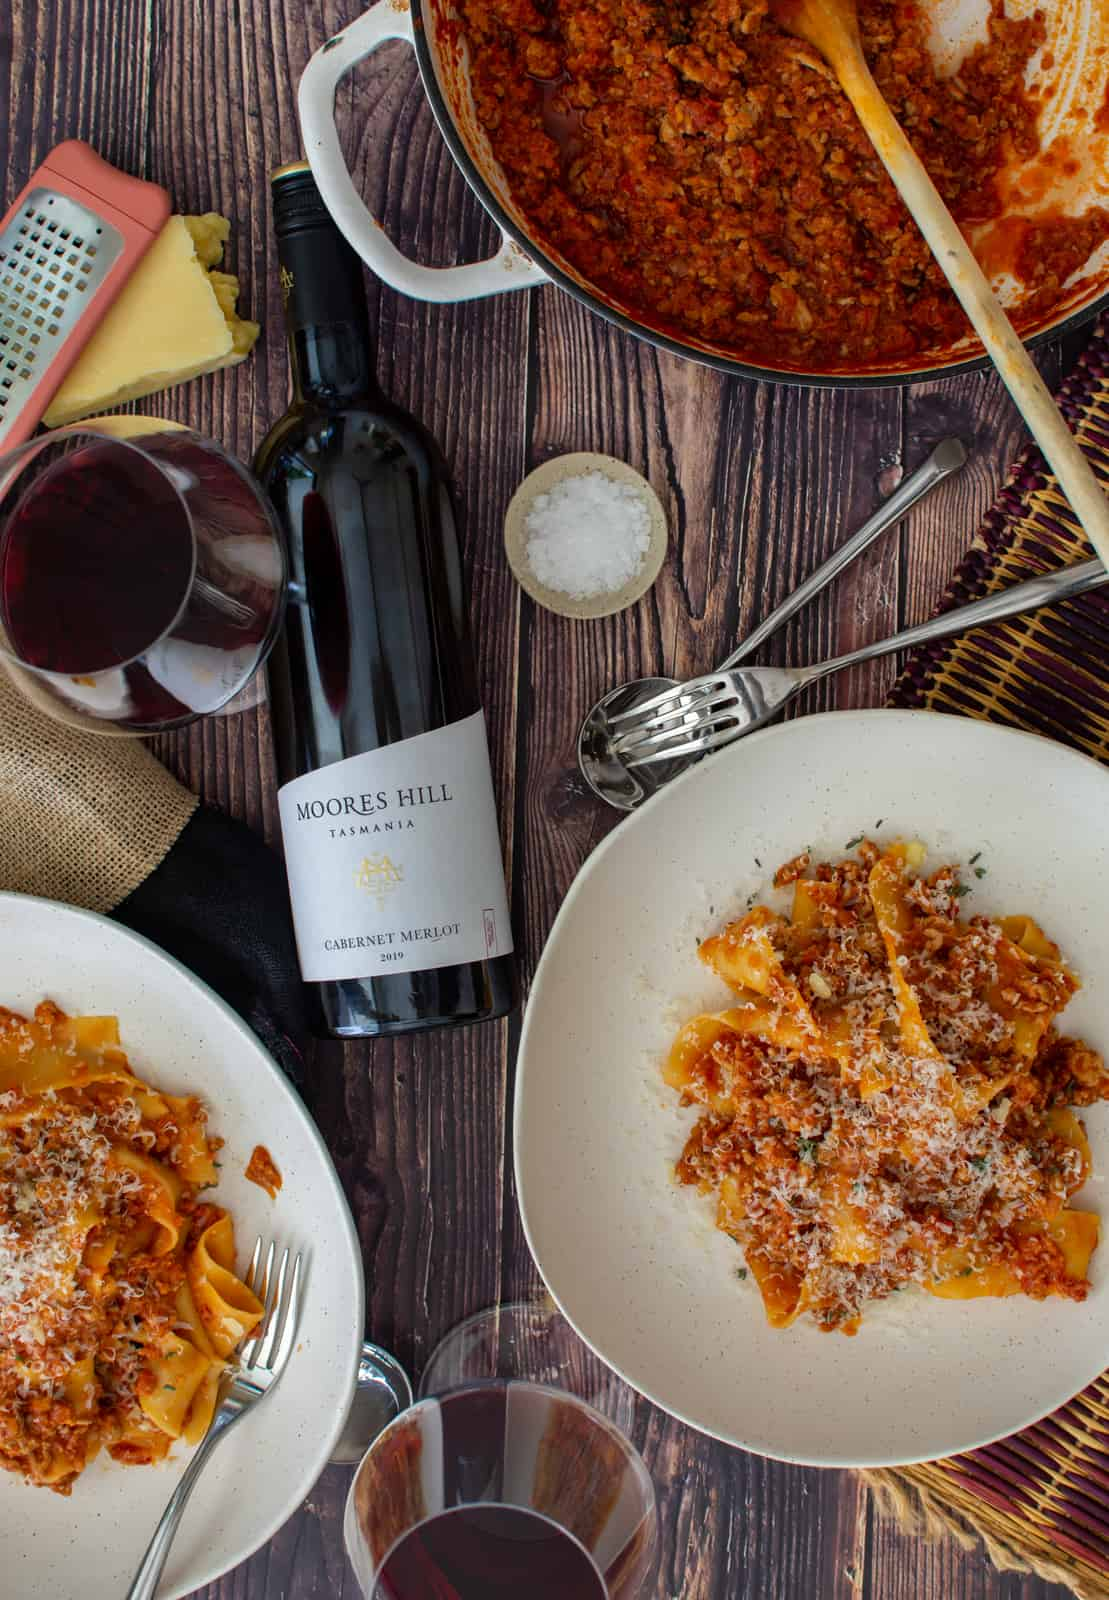 finsihed pork chorizo ragu in bowls, casserole dish and red wine on the table